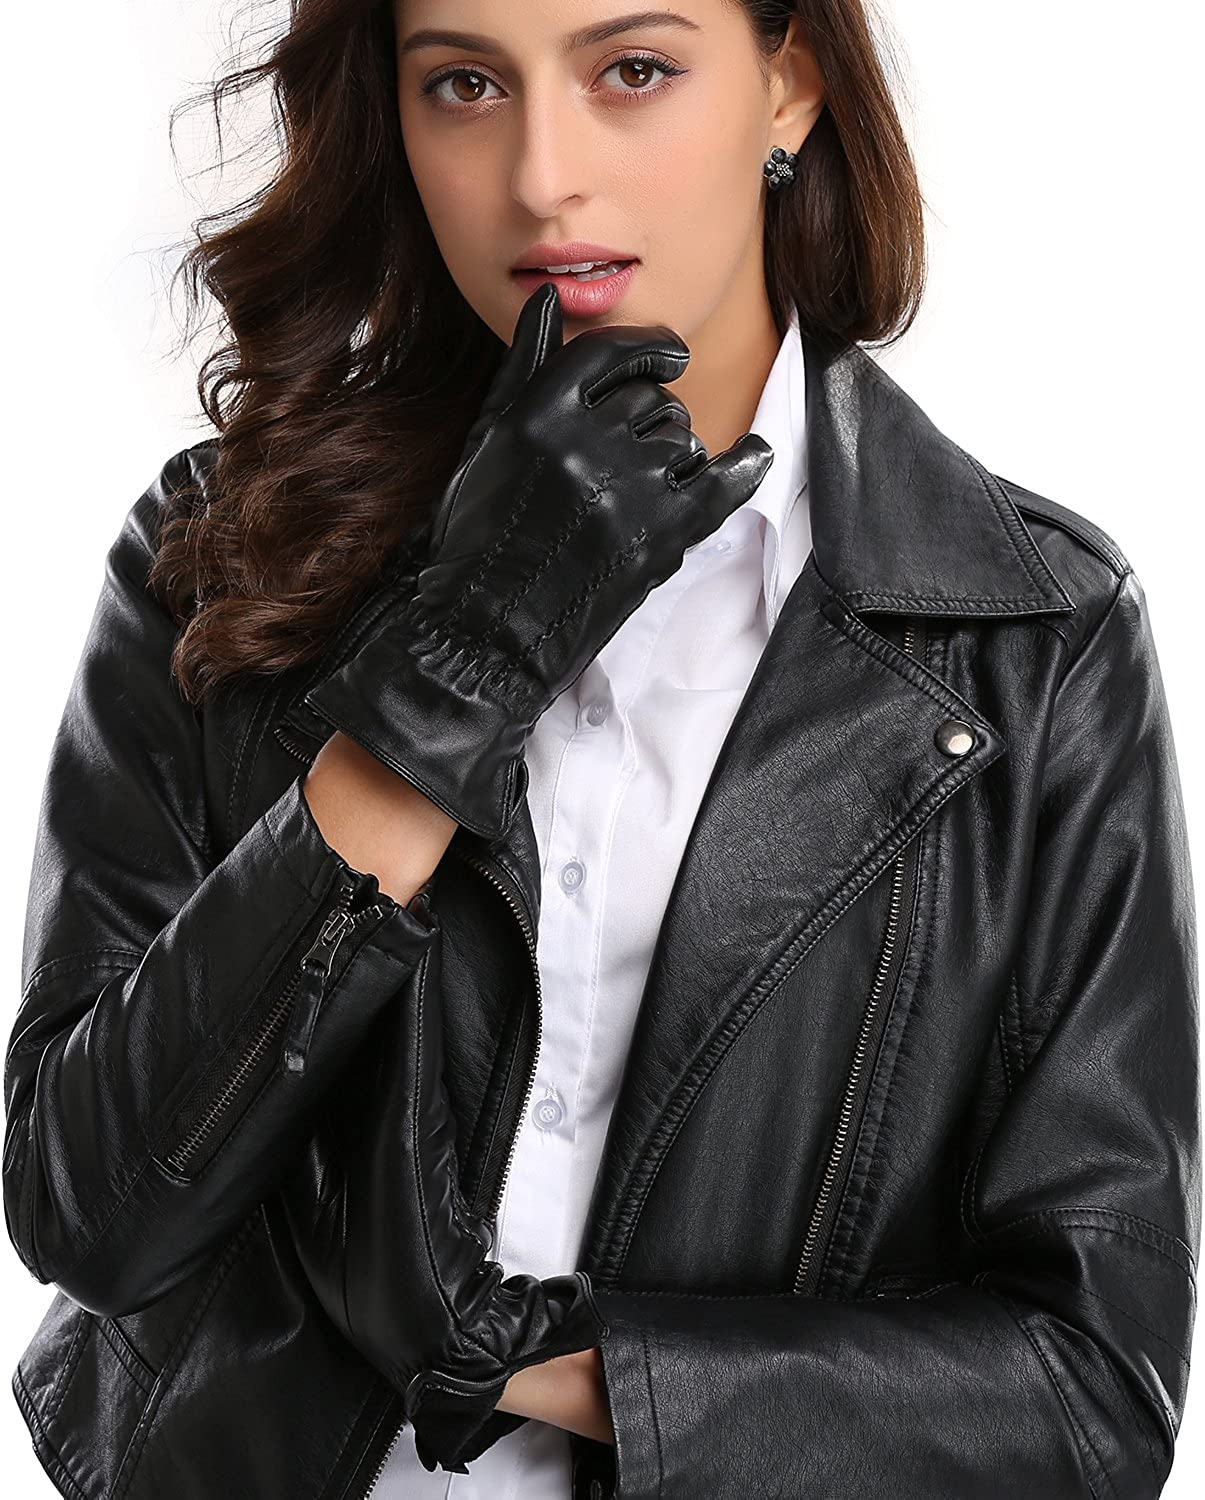 Womens Winter Leather Gloves,Touchscreen With Cashmere/Fleece Lining